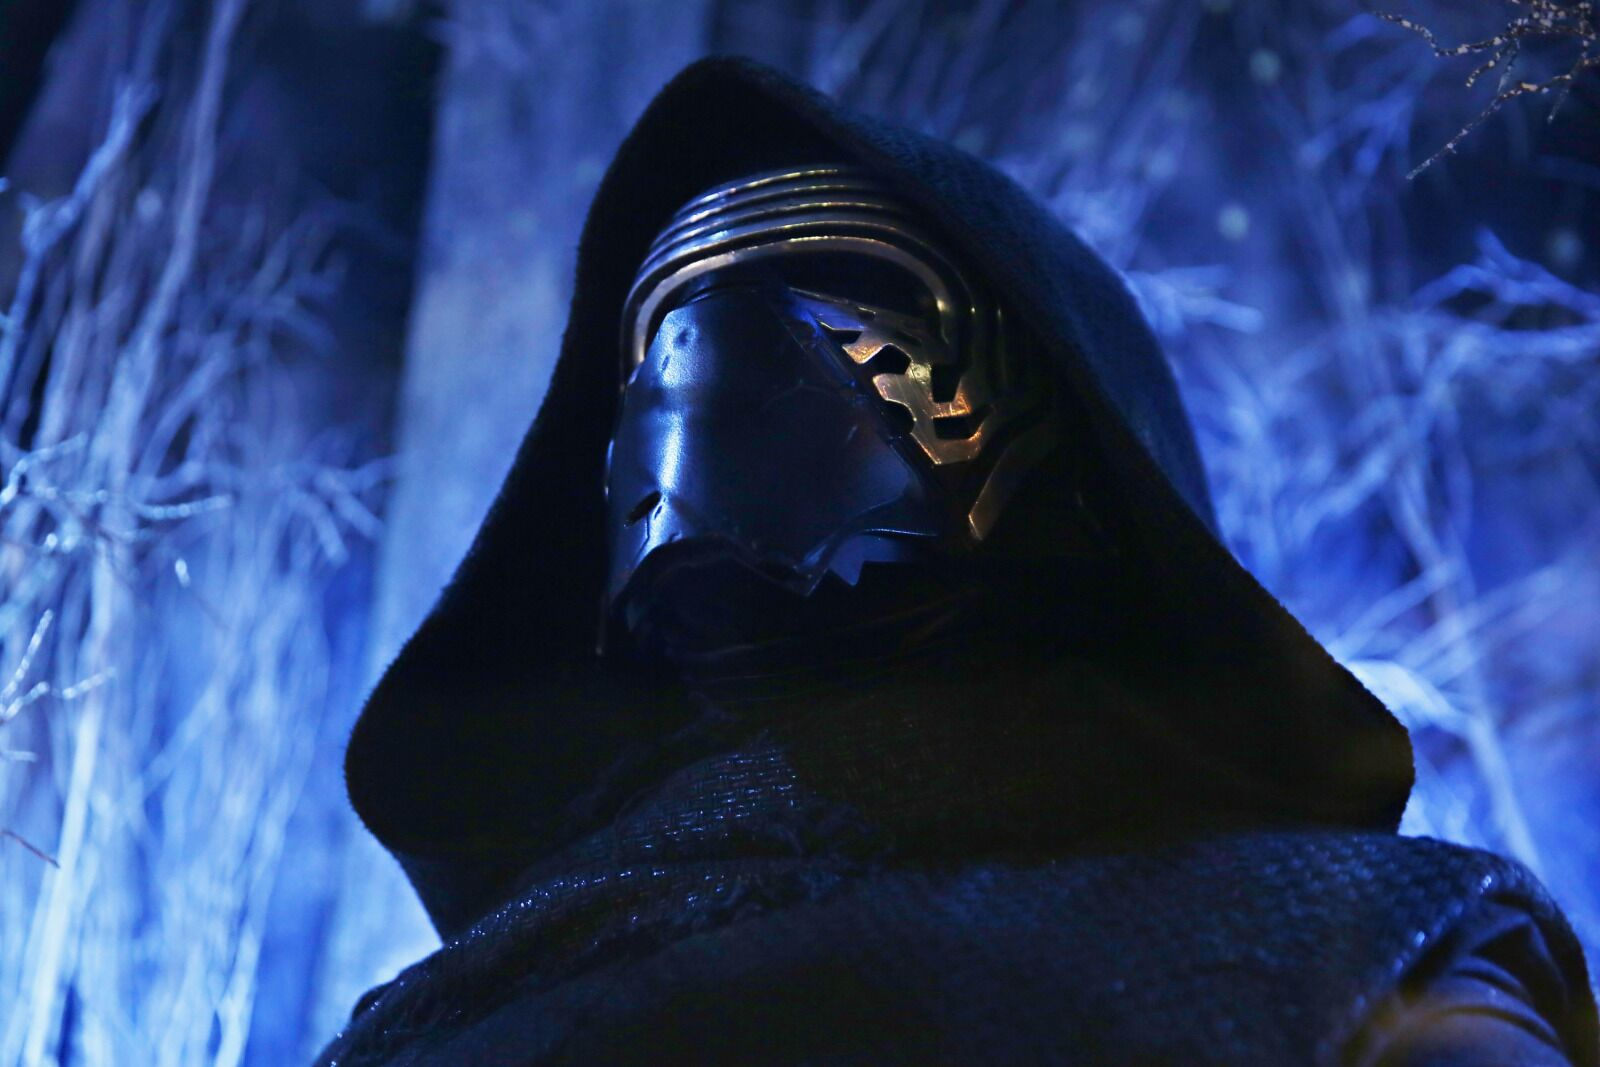 Everything Star Wars: Age of Resistance tells us about Kylo Ren